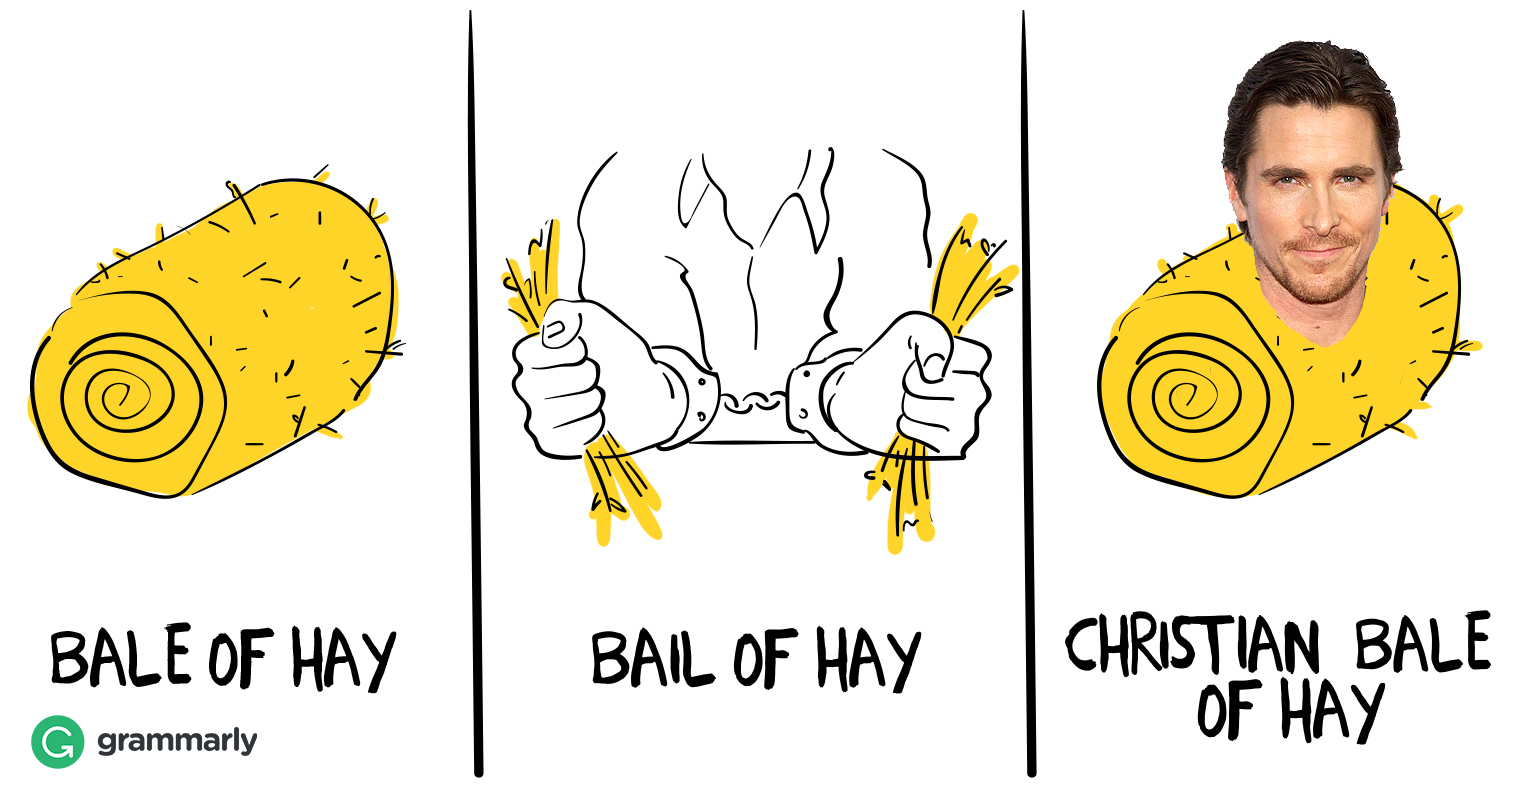 Bale of Hay or Bail of Hay Image